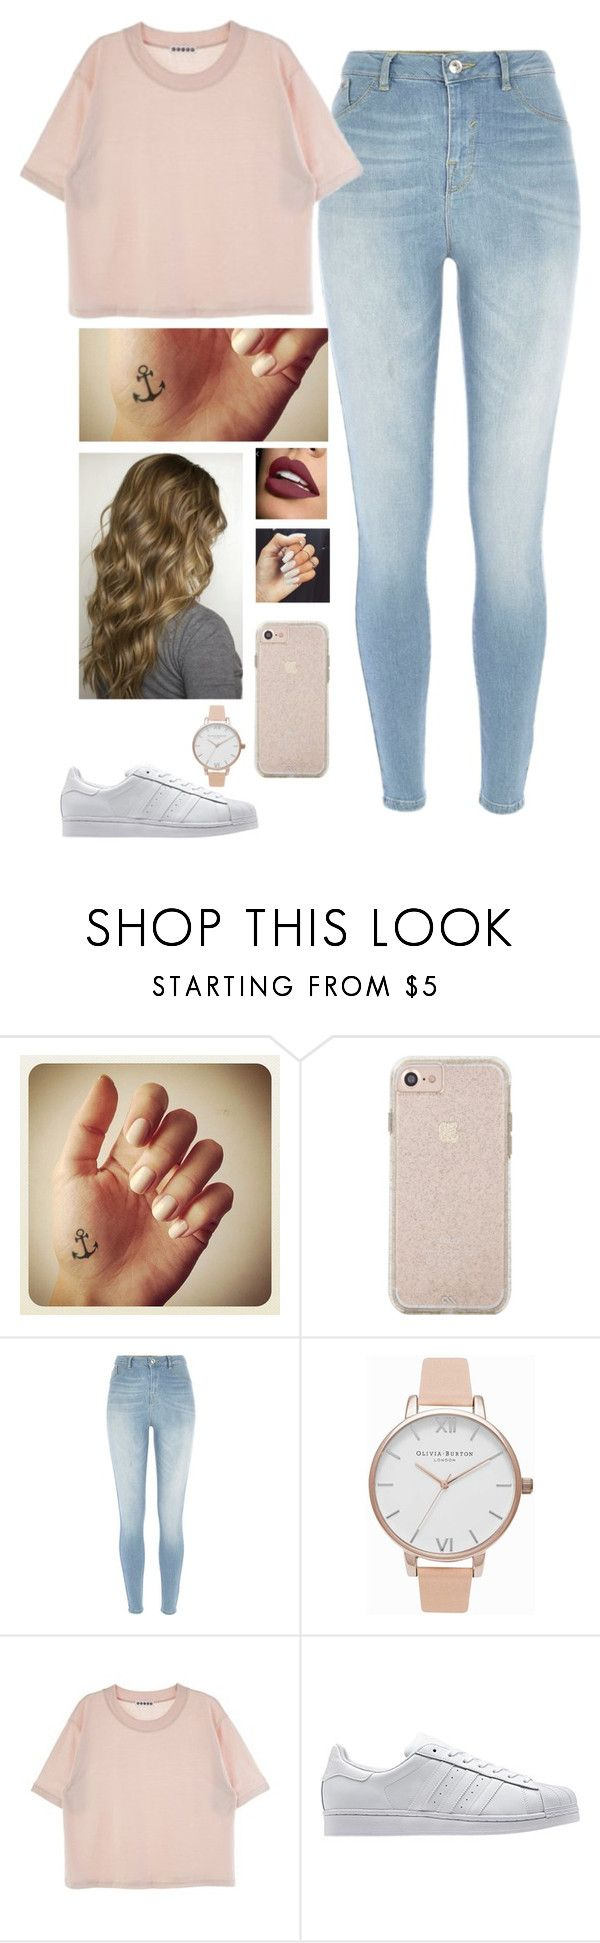 """Untitled #1396"" by troylerzalfie ❤ liked on Polyvore featuring River Island, Olivia Burton and adidas Originals"